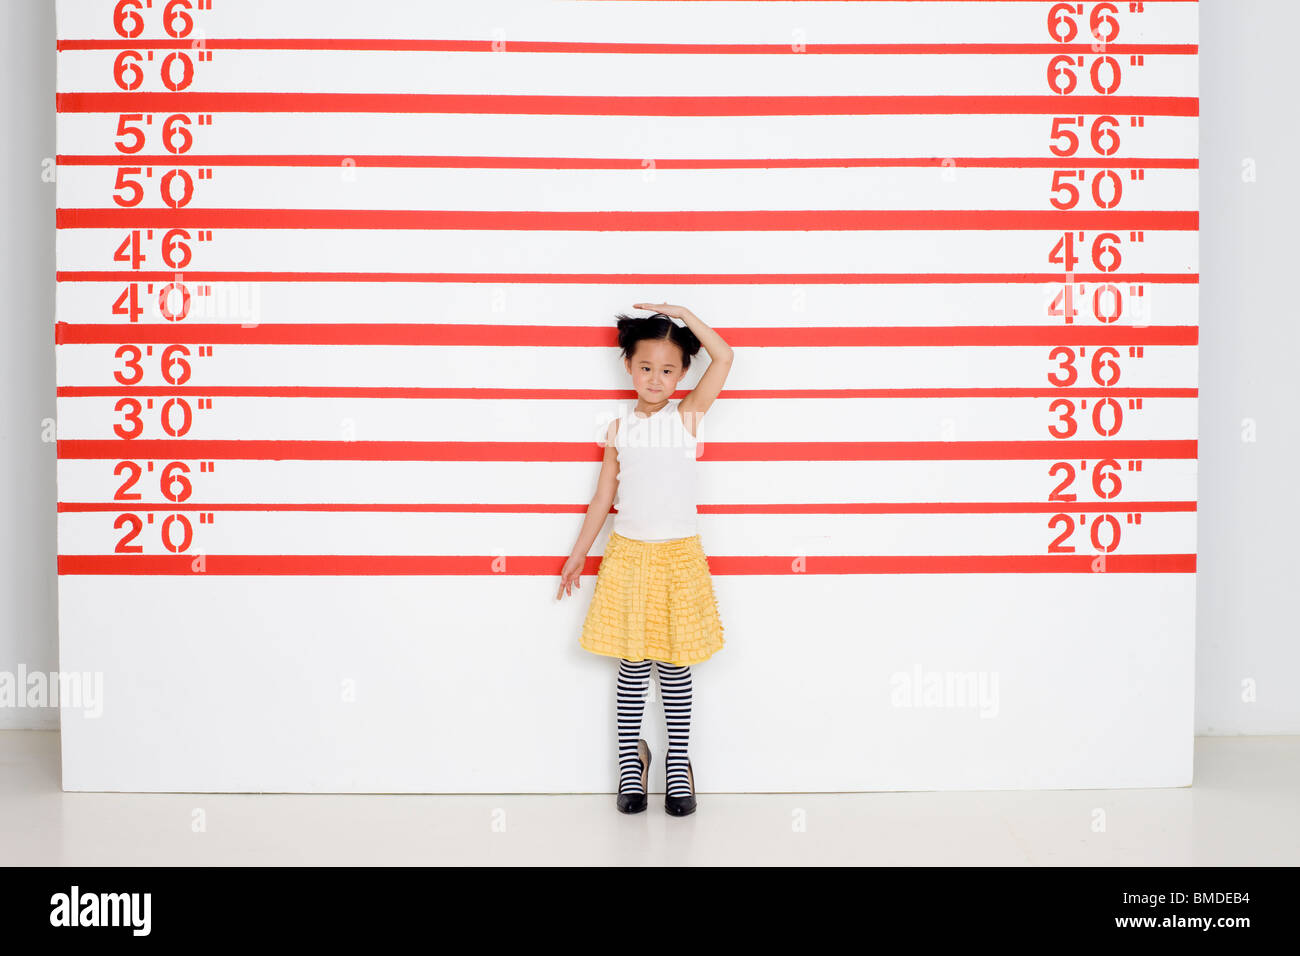 Girl in high heels measuring herself in front of growth chart - Stock Image